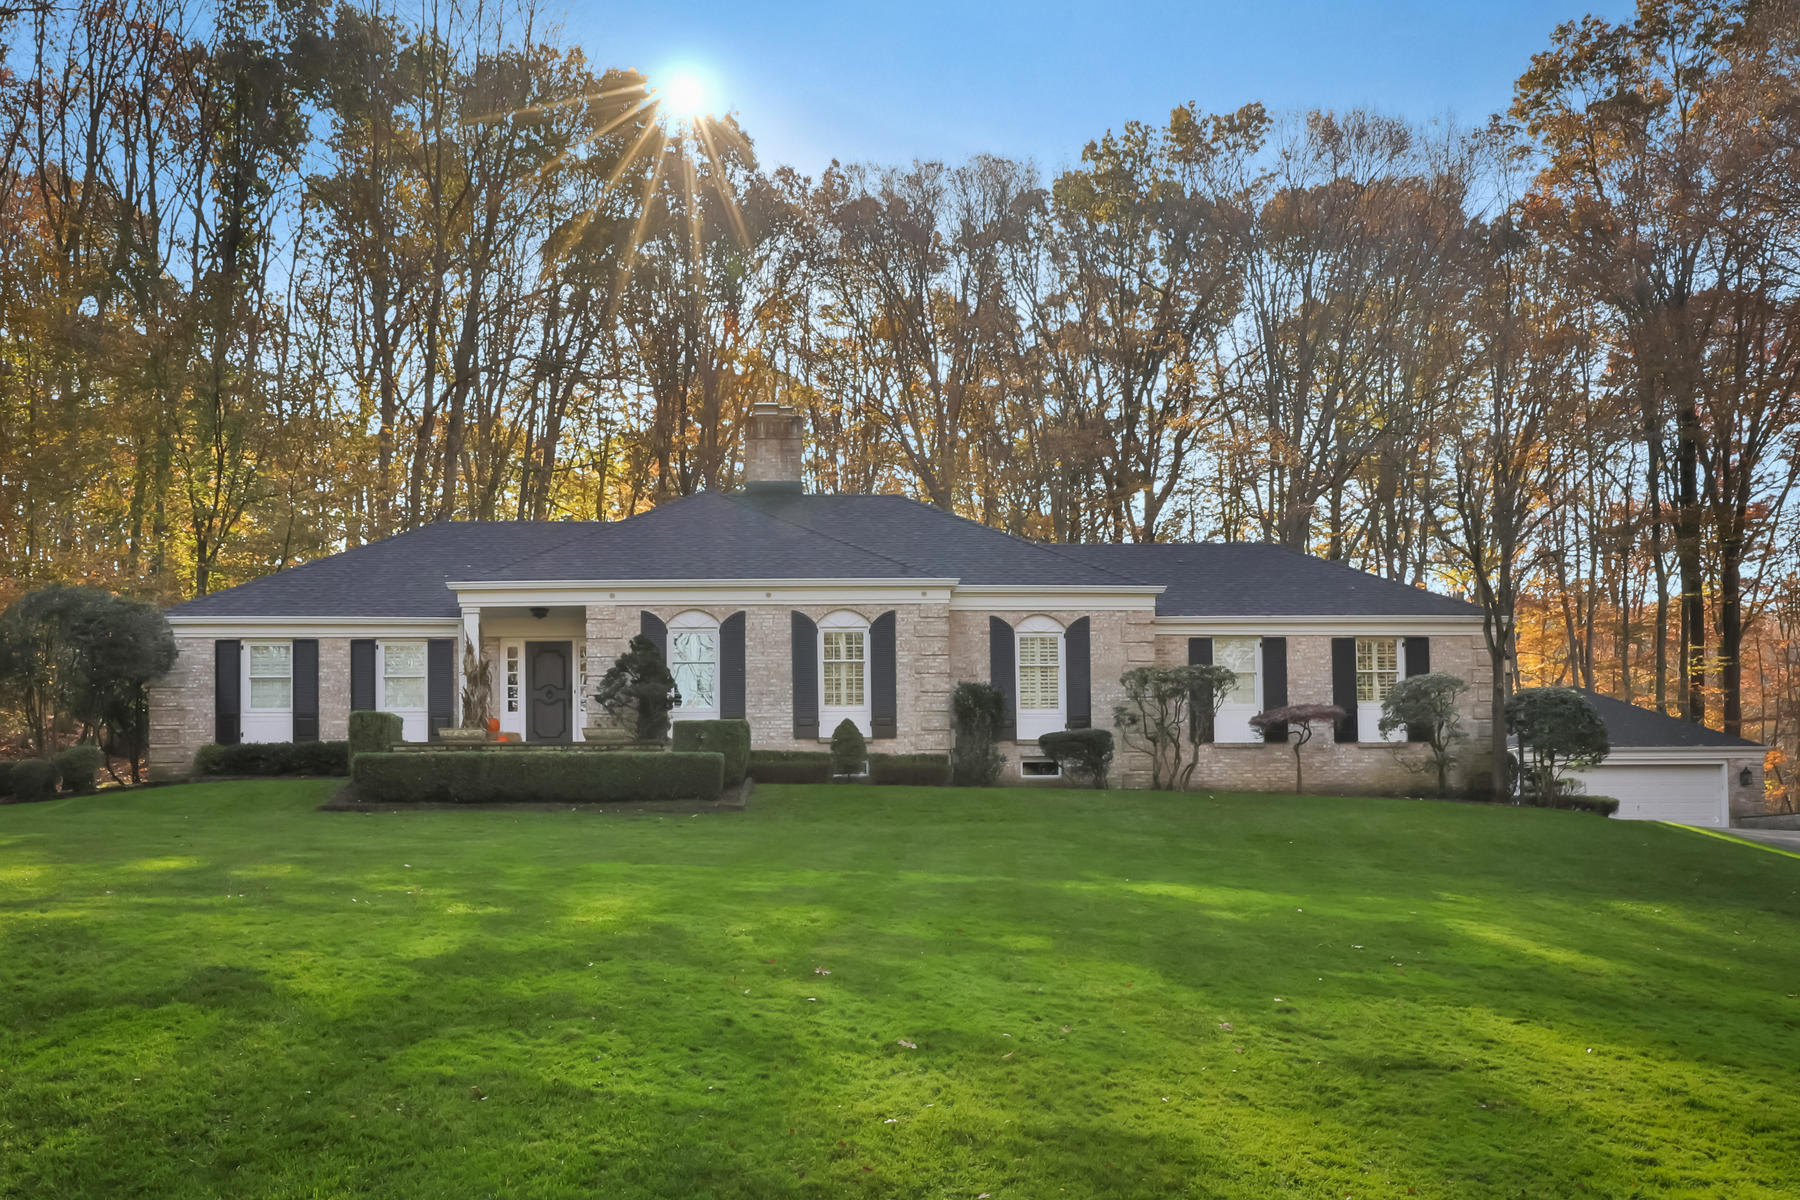 Single Family Homes for Sale at Lovely Expanded Ranch 25 Glenwood Rd Colts Neck, New Jersey 07722 United States